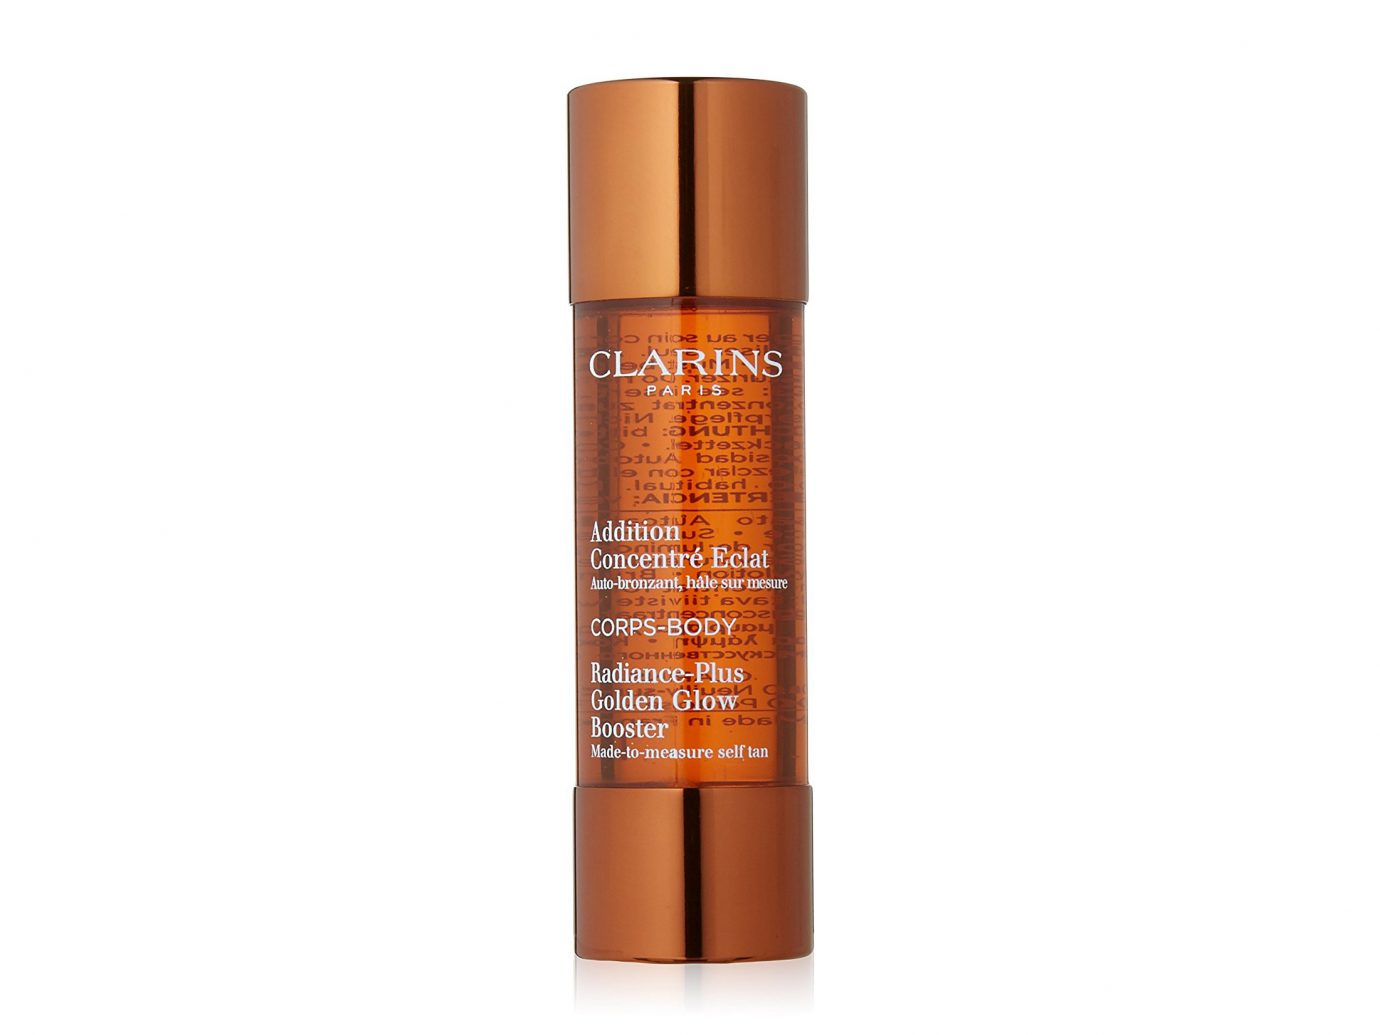 Summer Glow product Clarins Radiance-Plus Golden Glow Booster